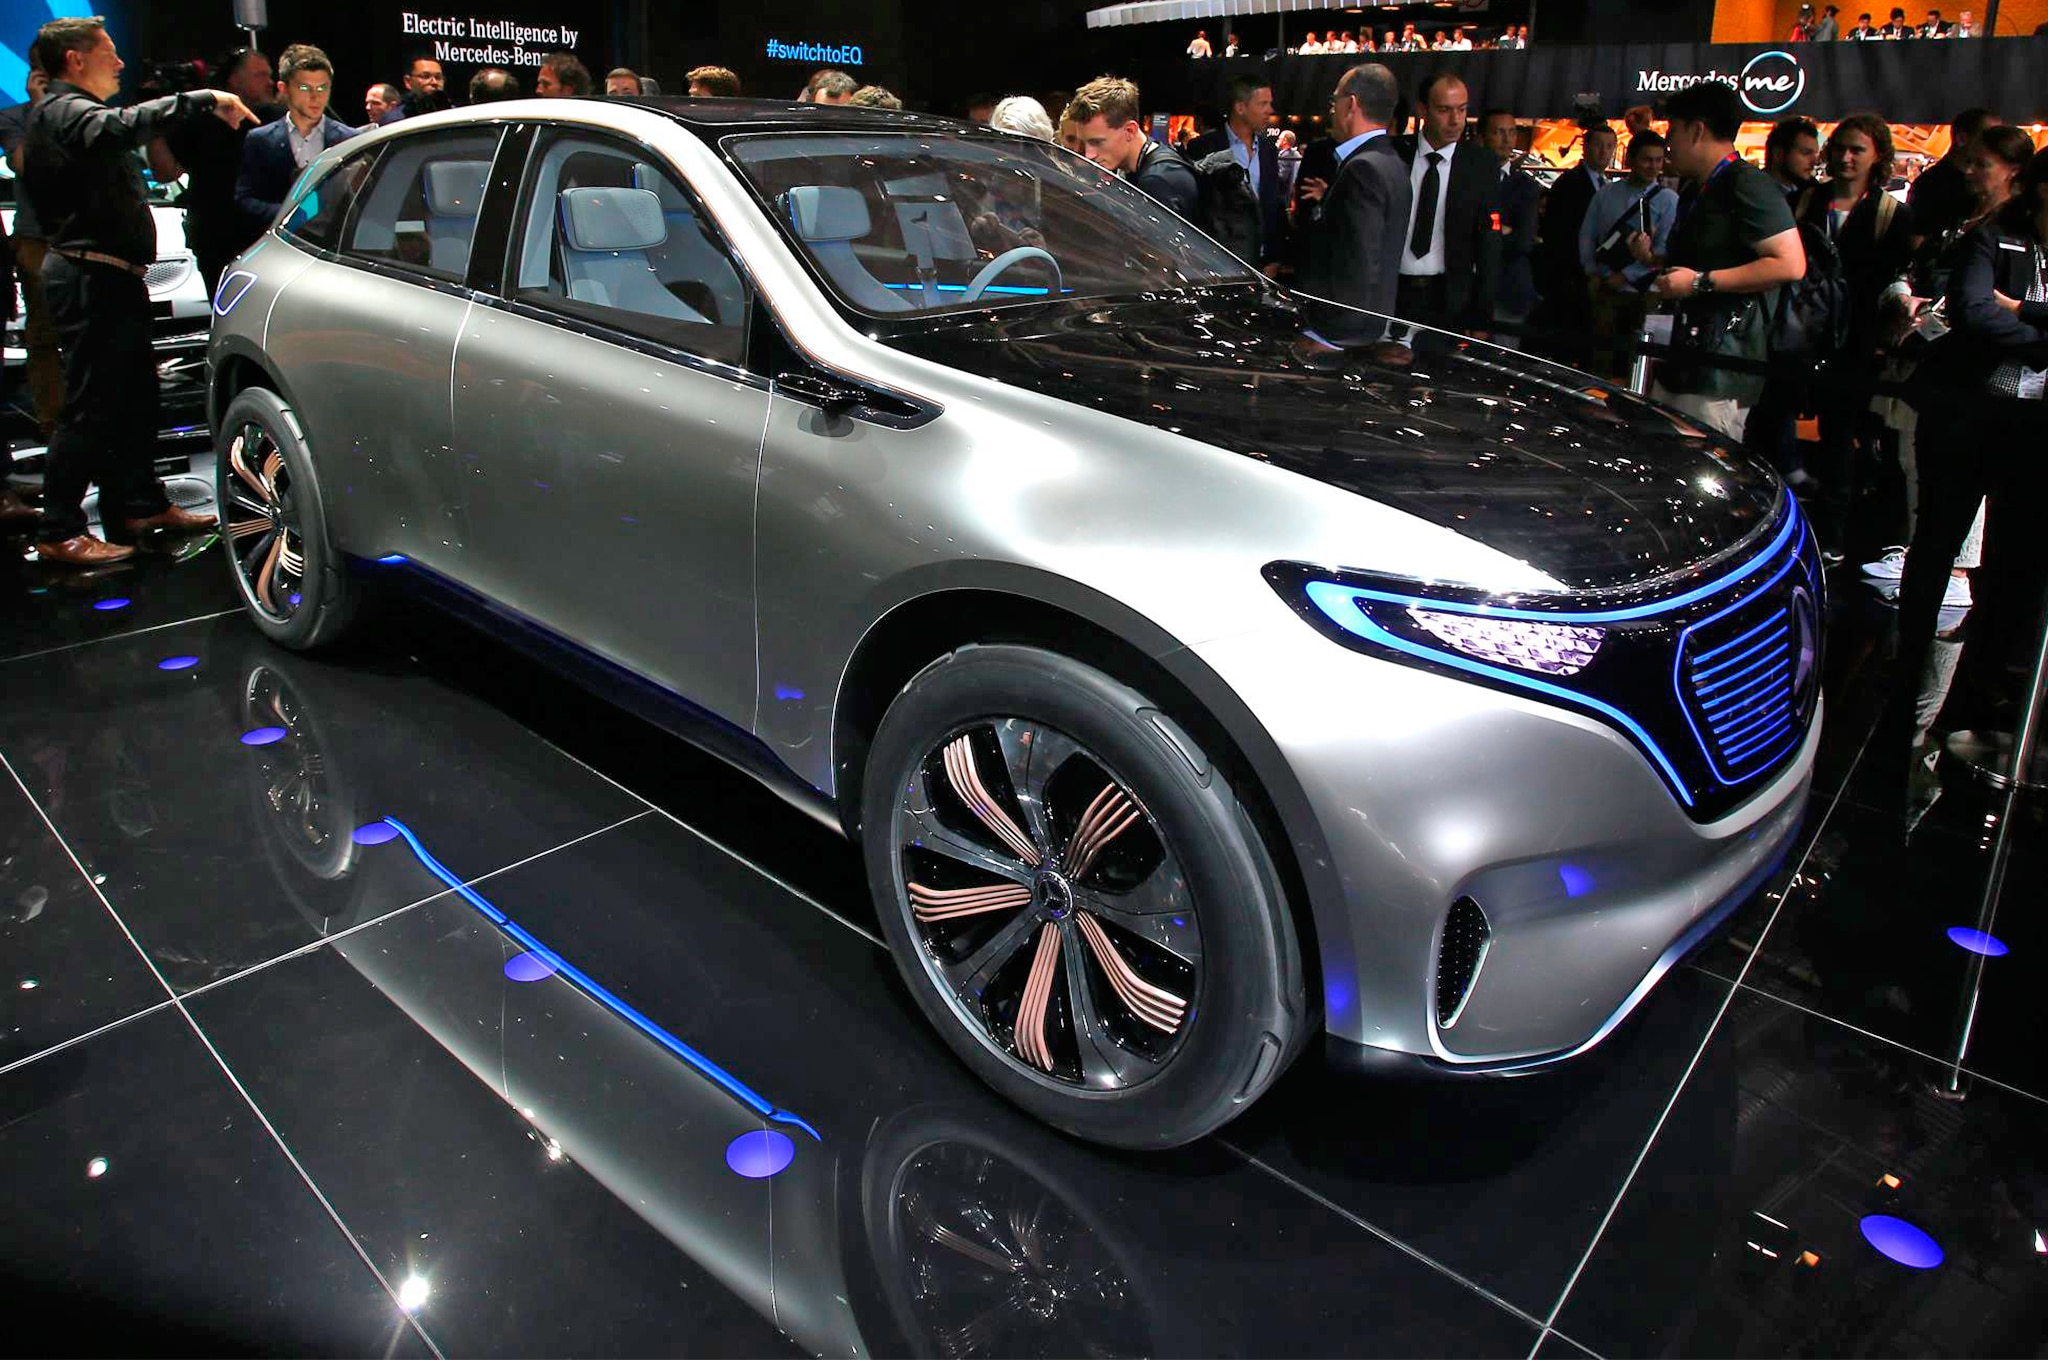 Mercedes benz cleared to use eq name for electric vehicles for Mercedes benz car names